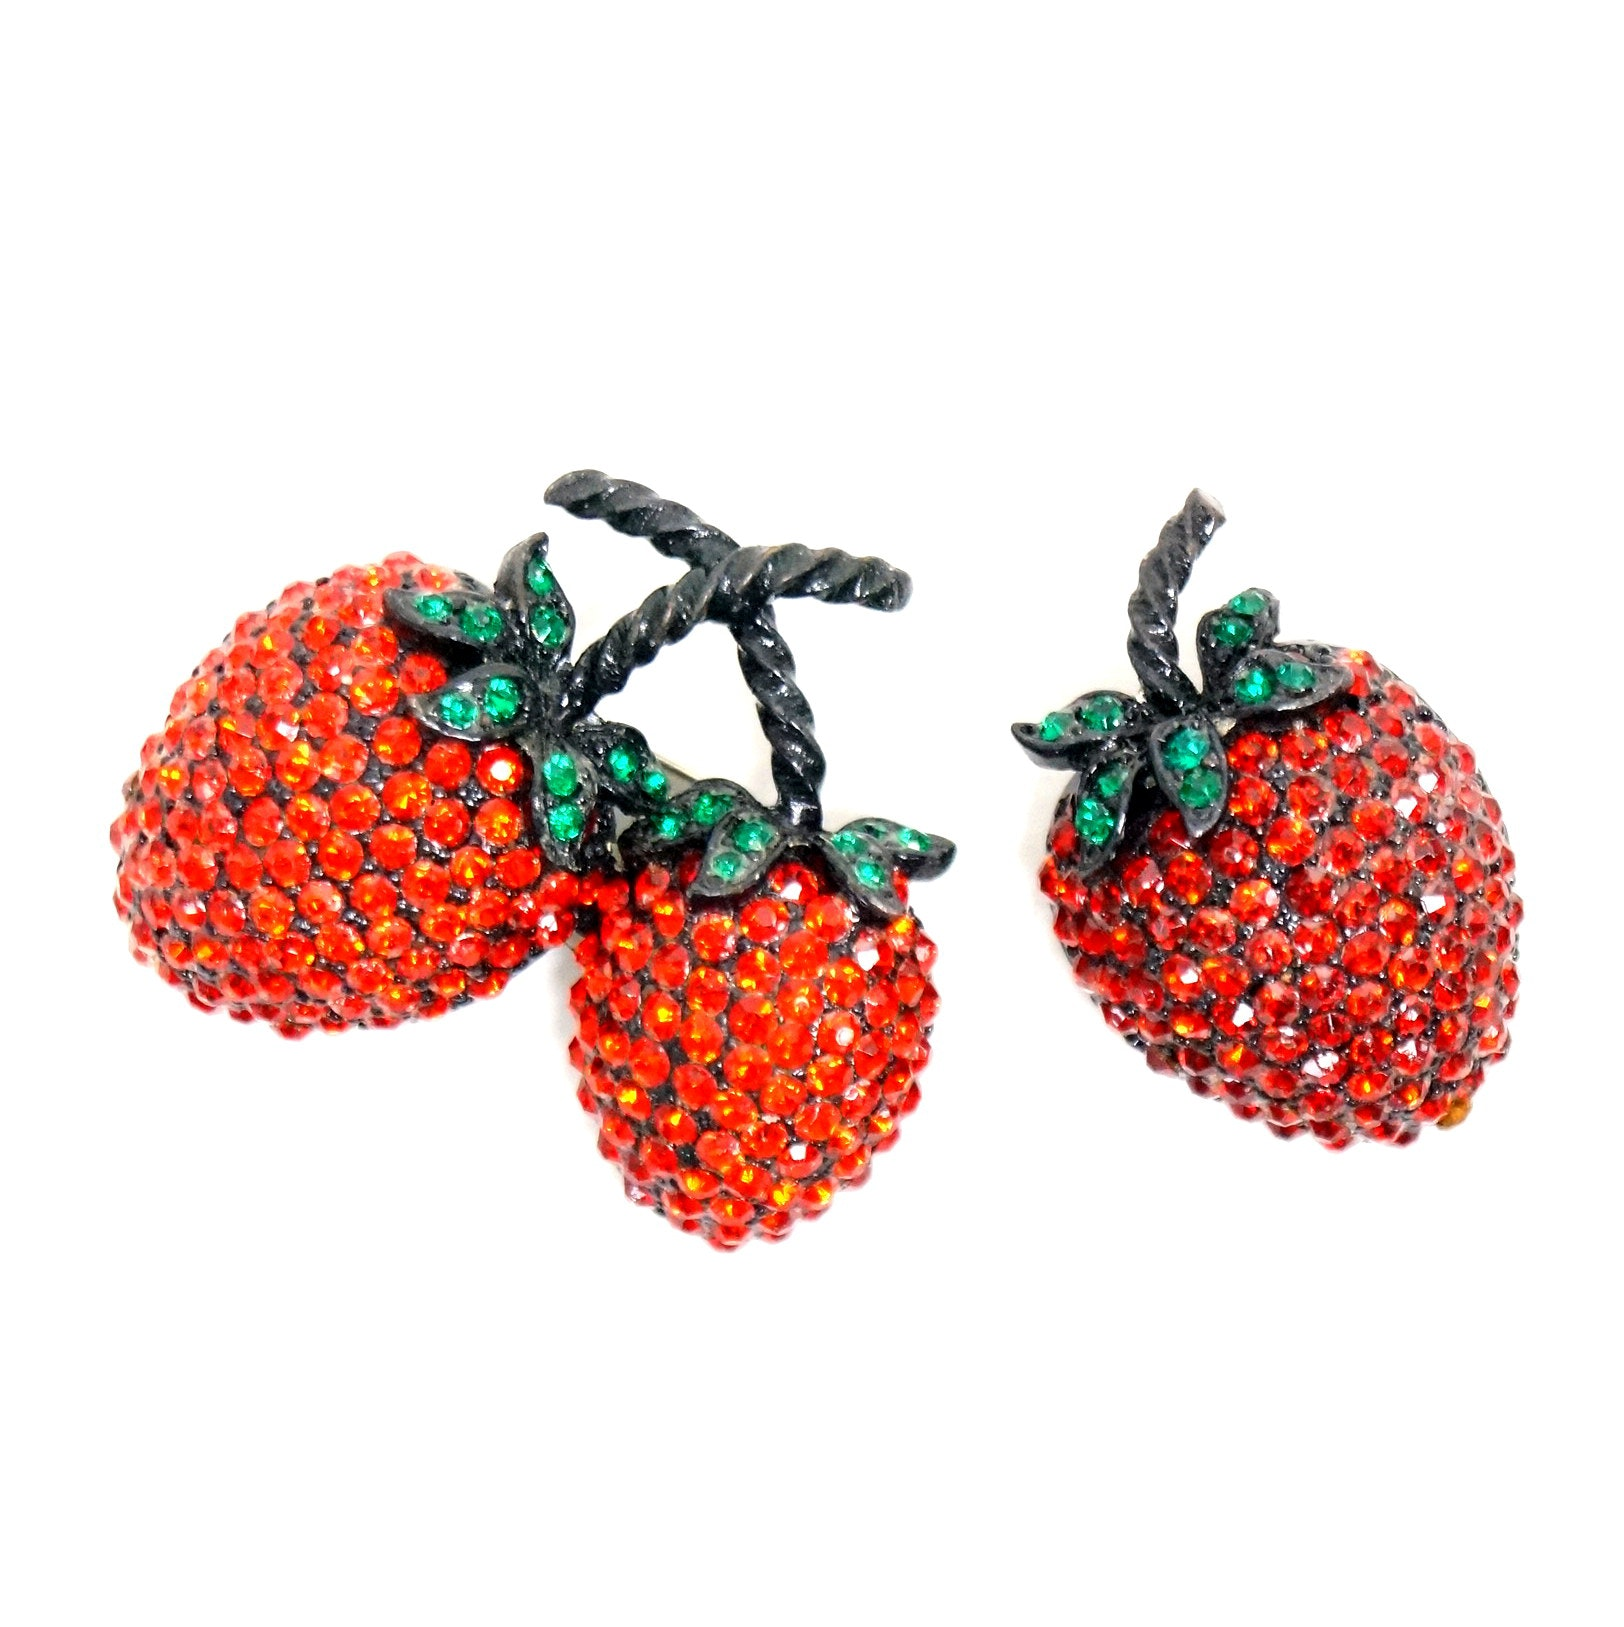 Vintage Strawberry Weiss Rhinestone Brooches